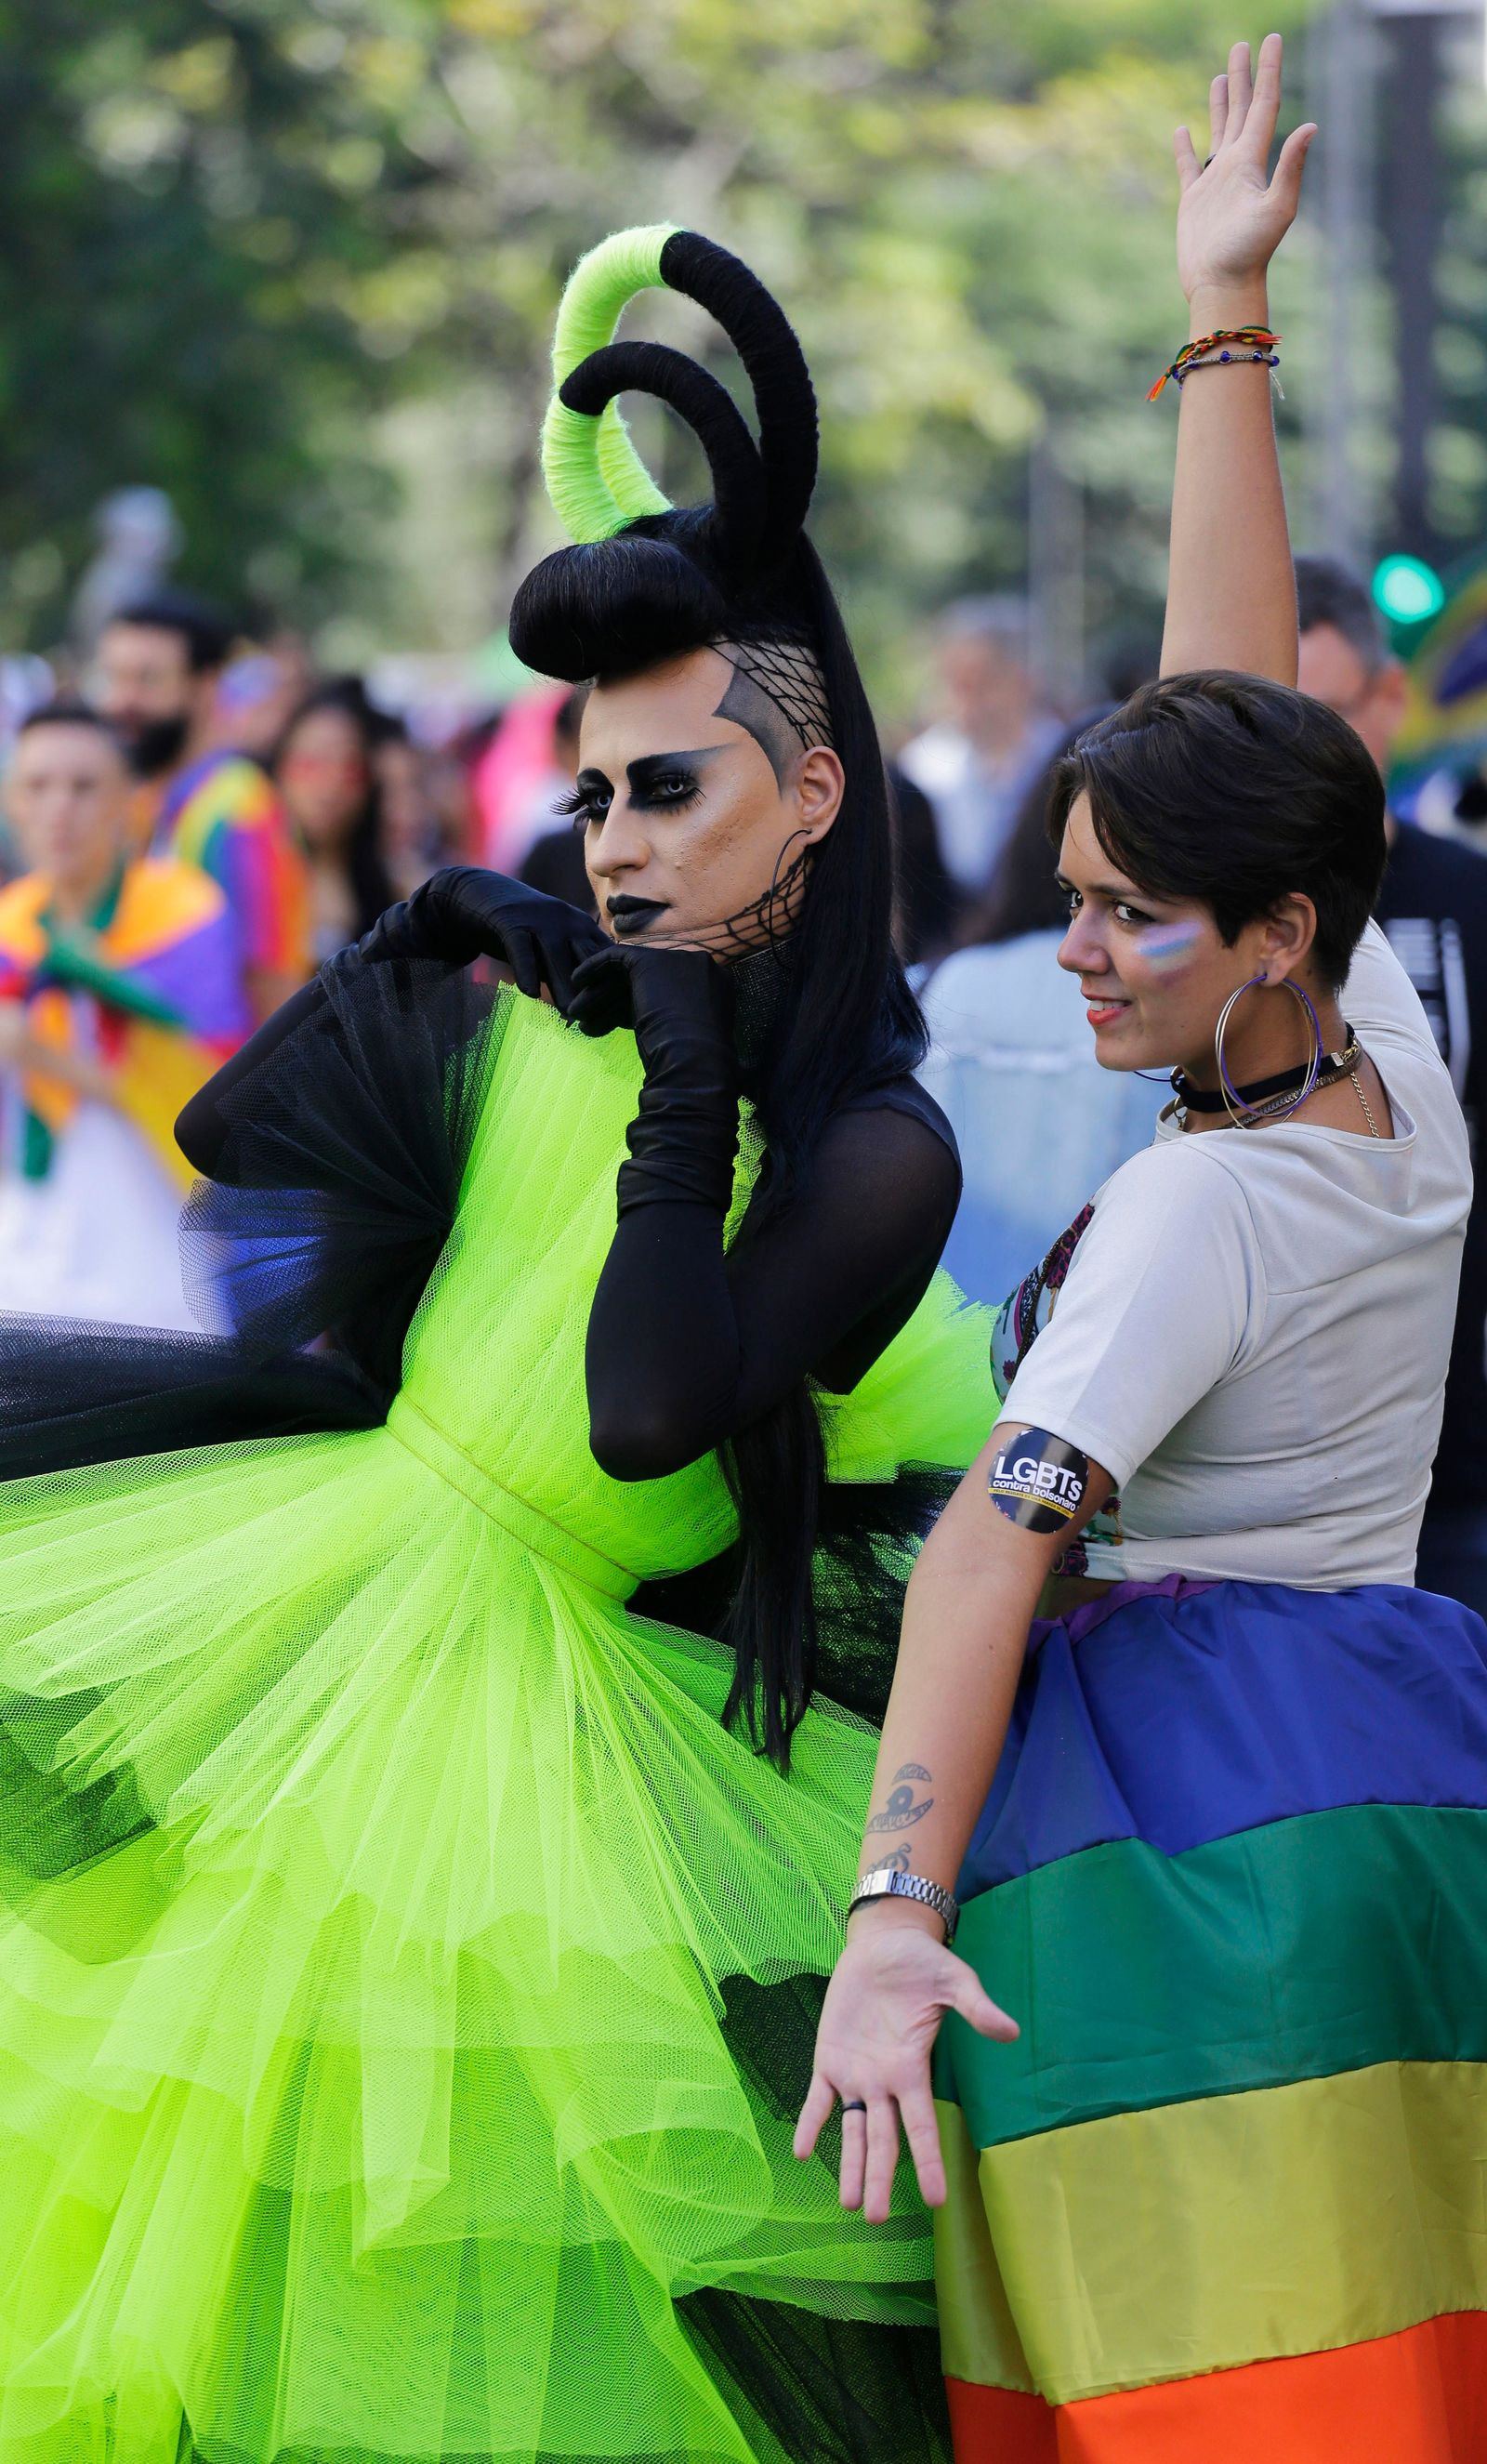 Revelers strike a pose during the annual gay pride parade along Paulista avenue in Sao Paulo, Brazil, Sunday, June 23, 2019. (AP Photo/Nelson Antoine)